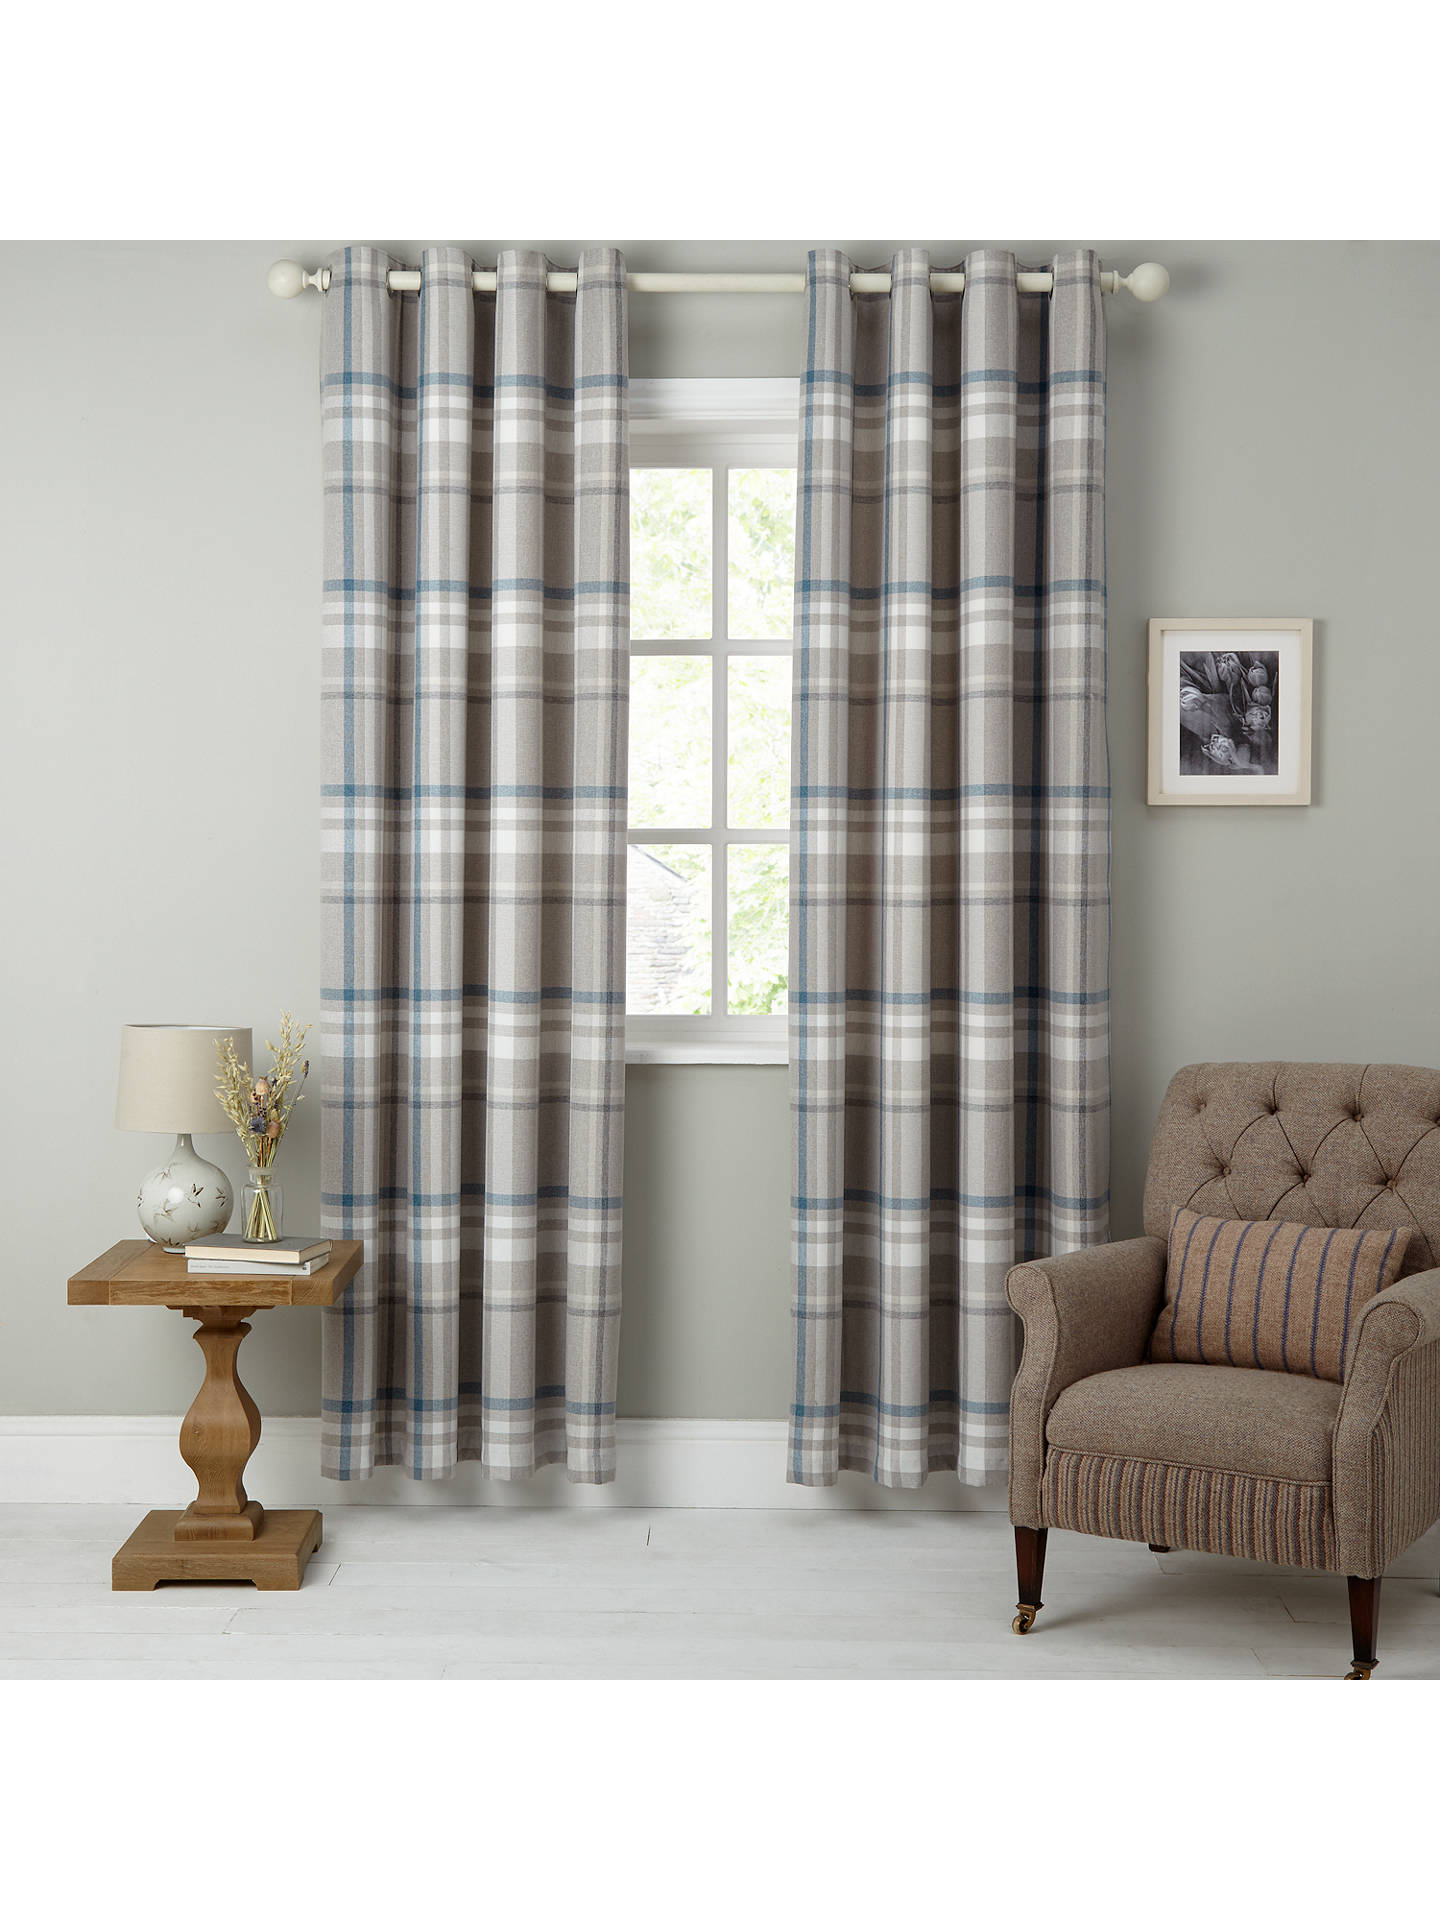 Curtains & Blinds Tiebacks Pair Brand New United Oxford Check Lined Curtains Curtains & Pelmets